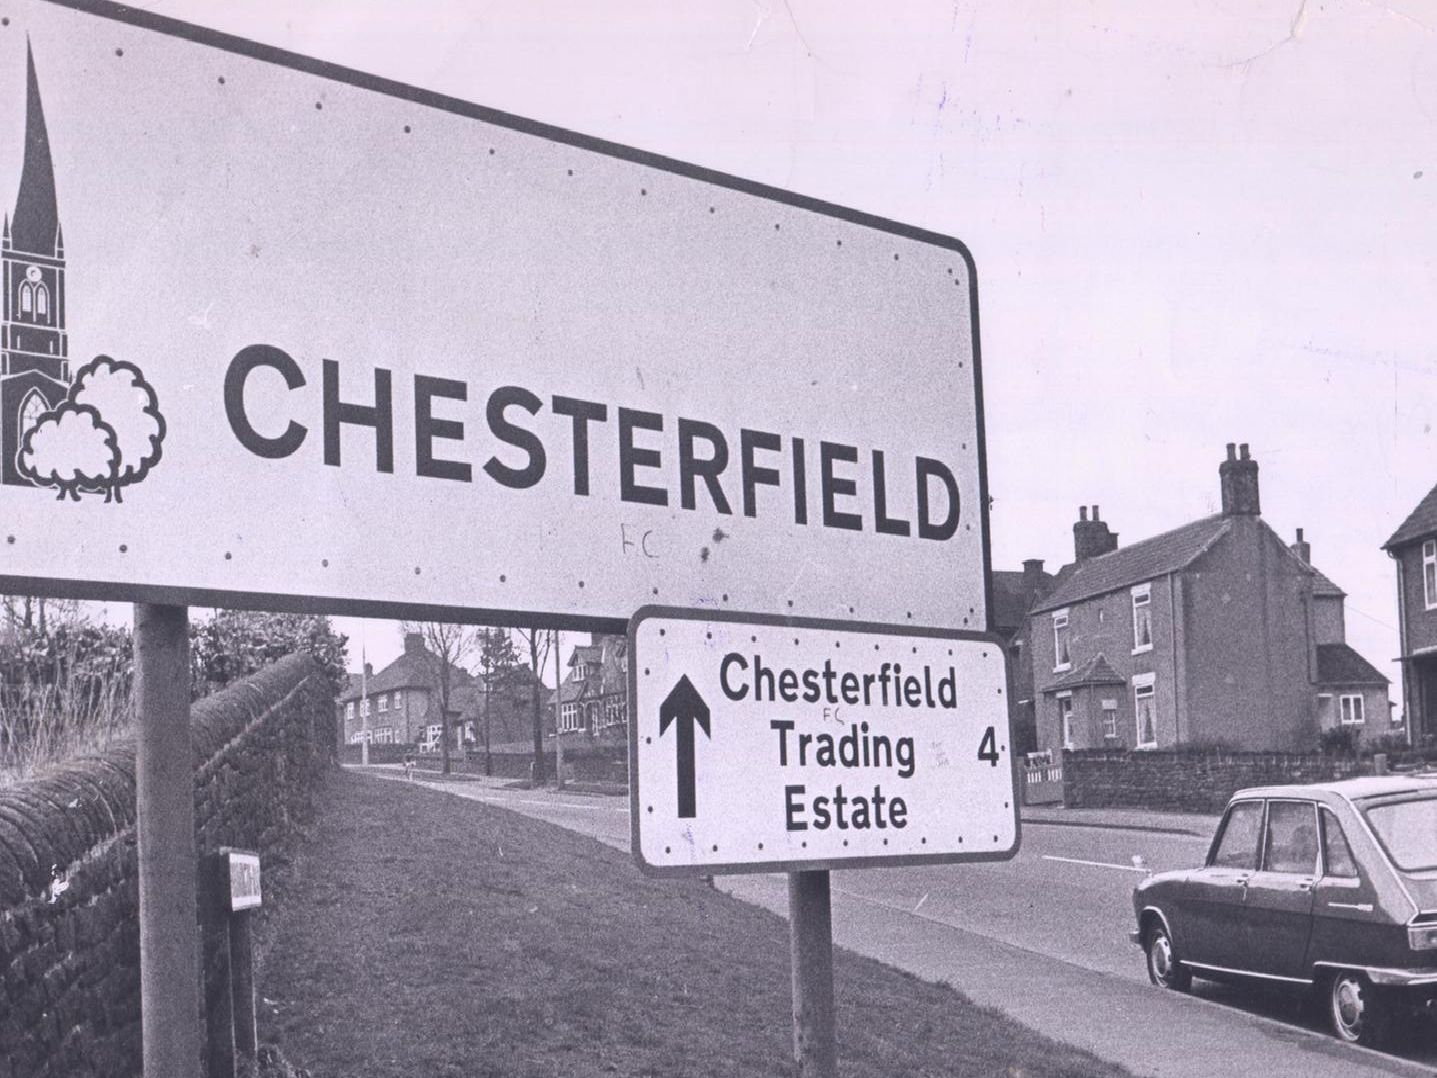 Old Chesterfield sign.